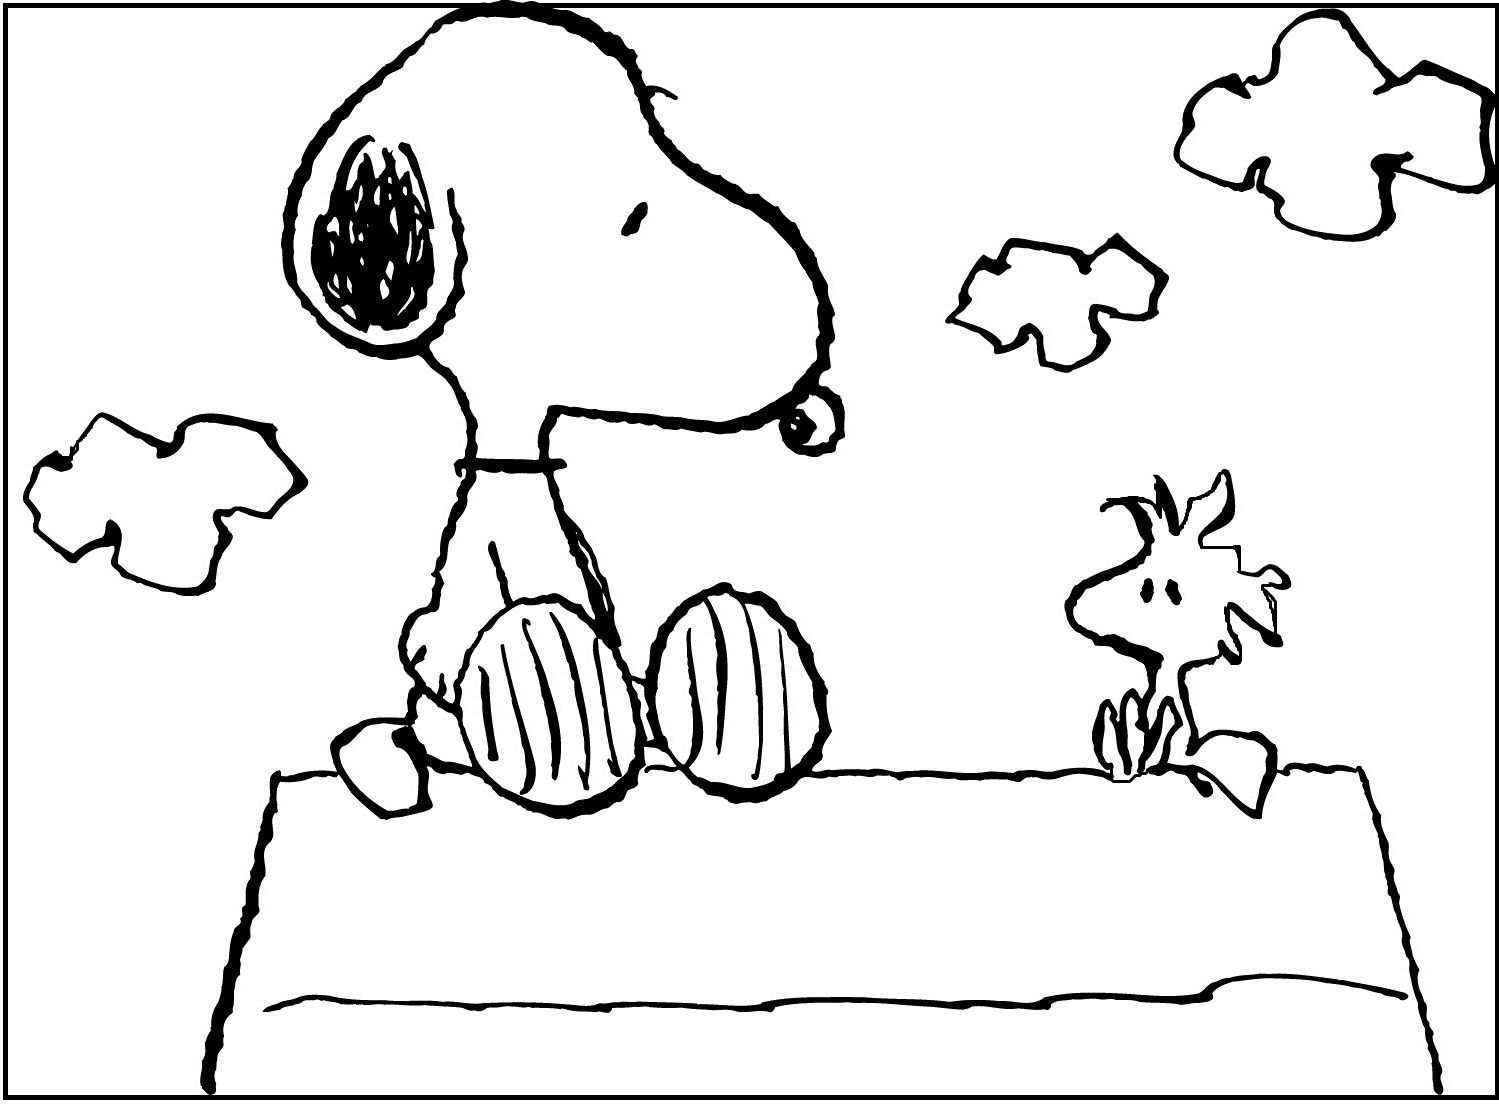 Snoopy Sitting With Woodstock Coloring Pages For Kids Fys Printable Snoopy Coloring Pages For Kids Hoja Cuadriculada Cuadricula Hojas